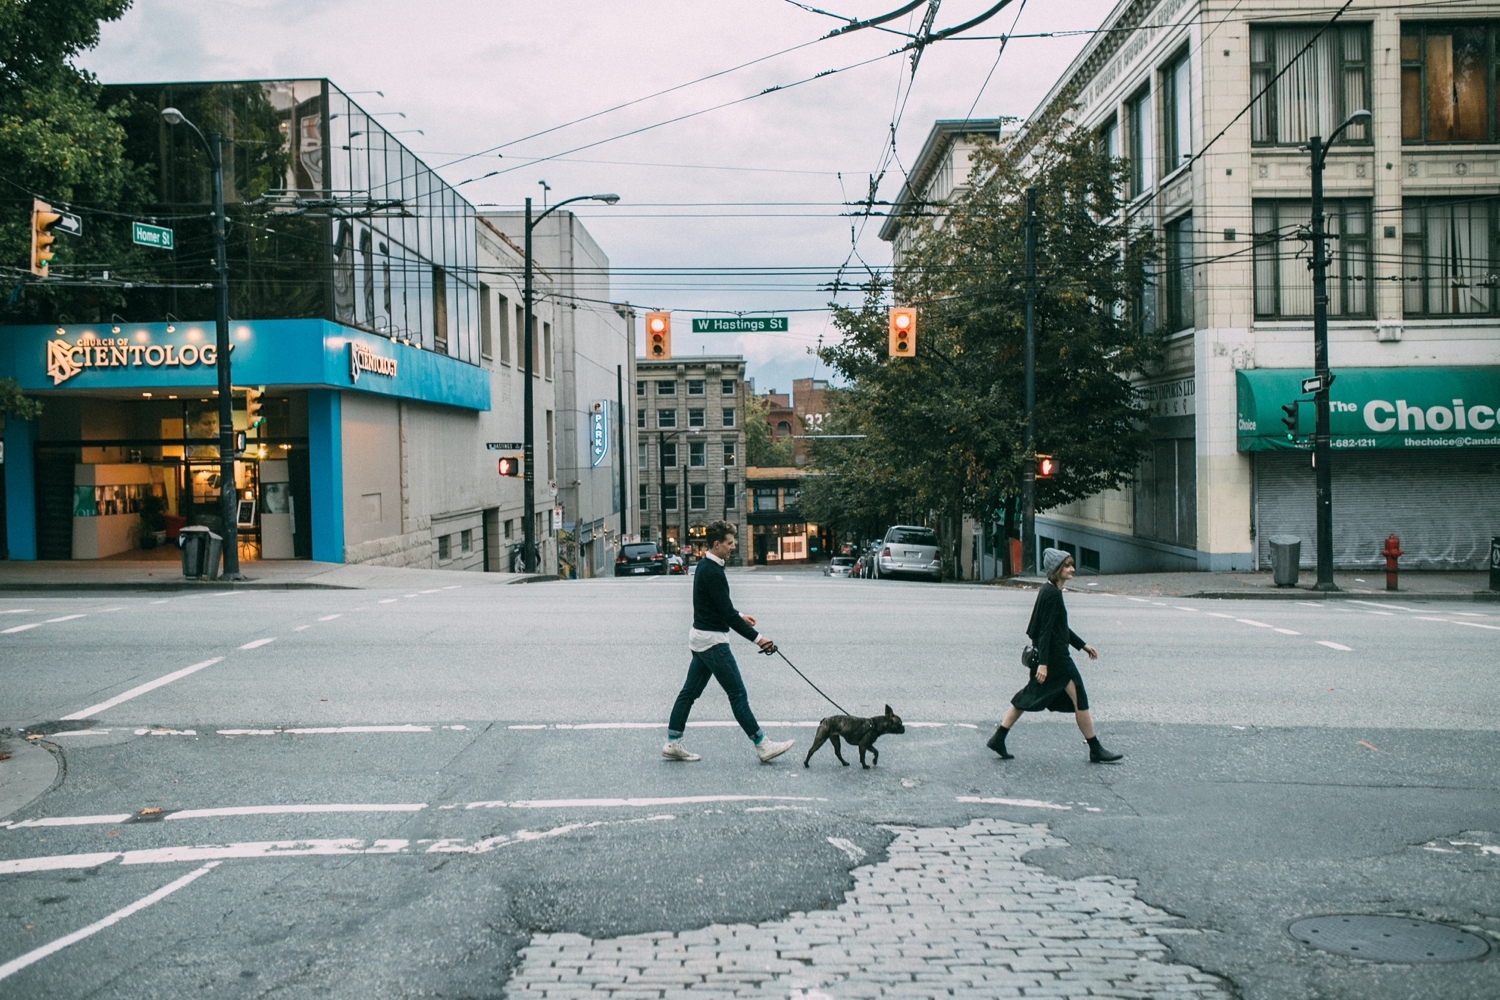 Photojournalist Wedding Photographer based in Vancouver Canada captures couple walking on the city streets with their dog